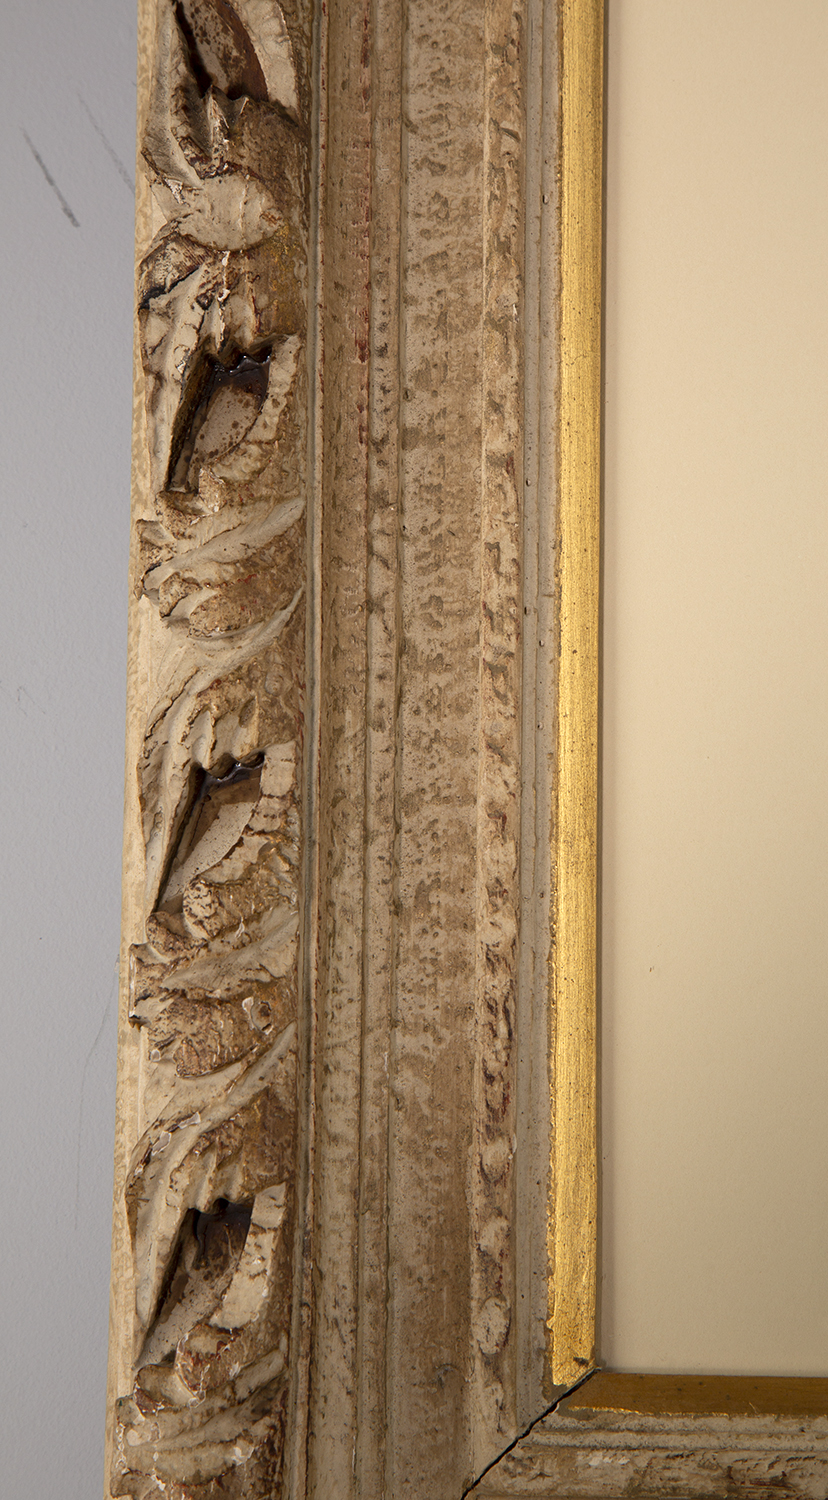 Detailed view of carved wood frame